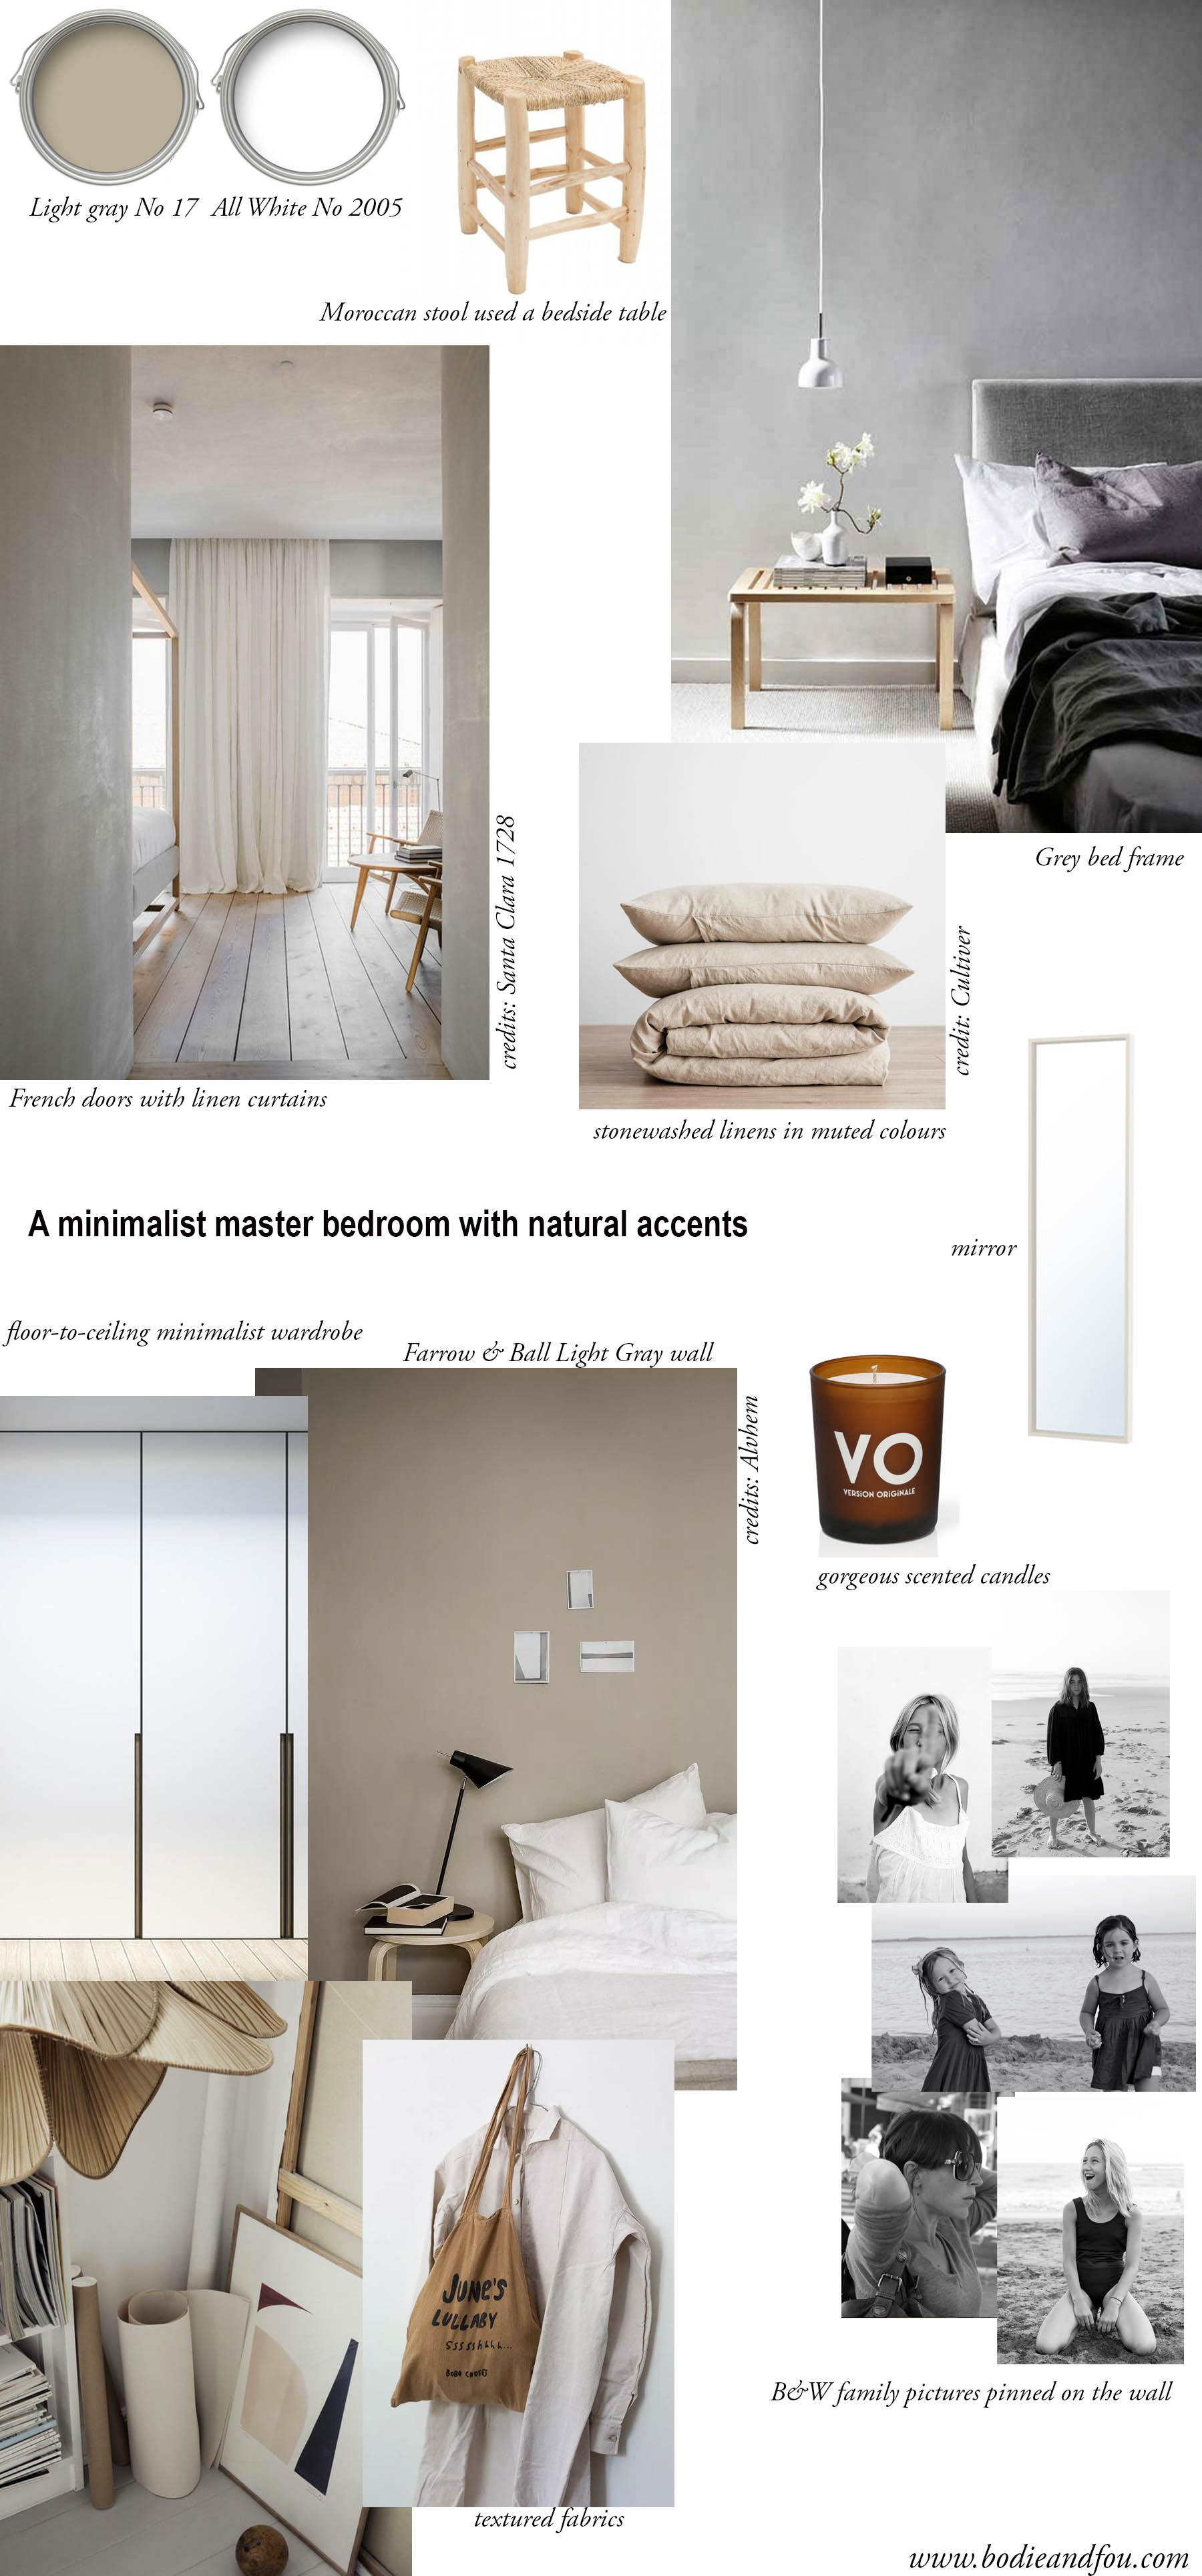 How to create a mood board for your home in 3 steps